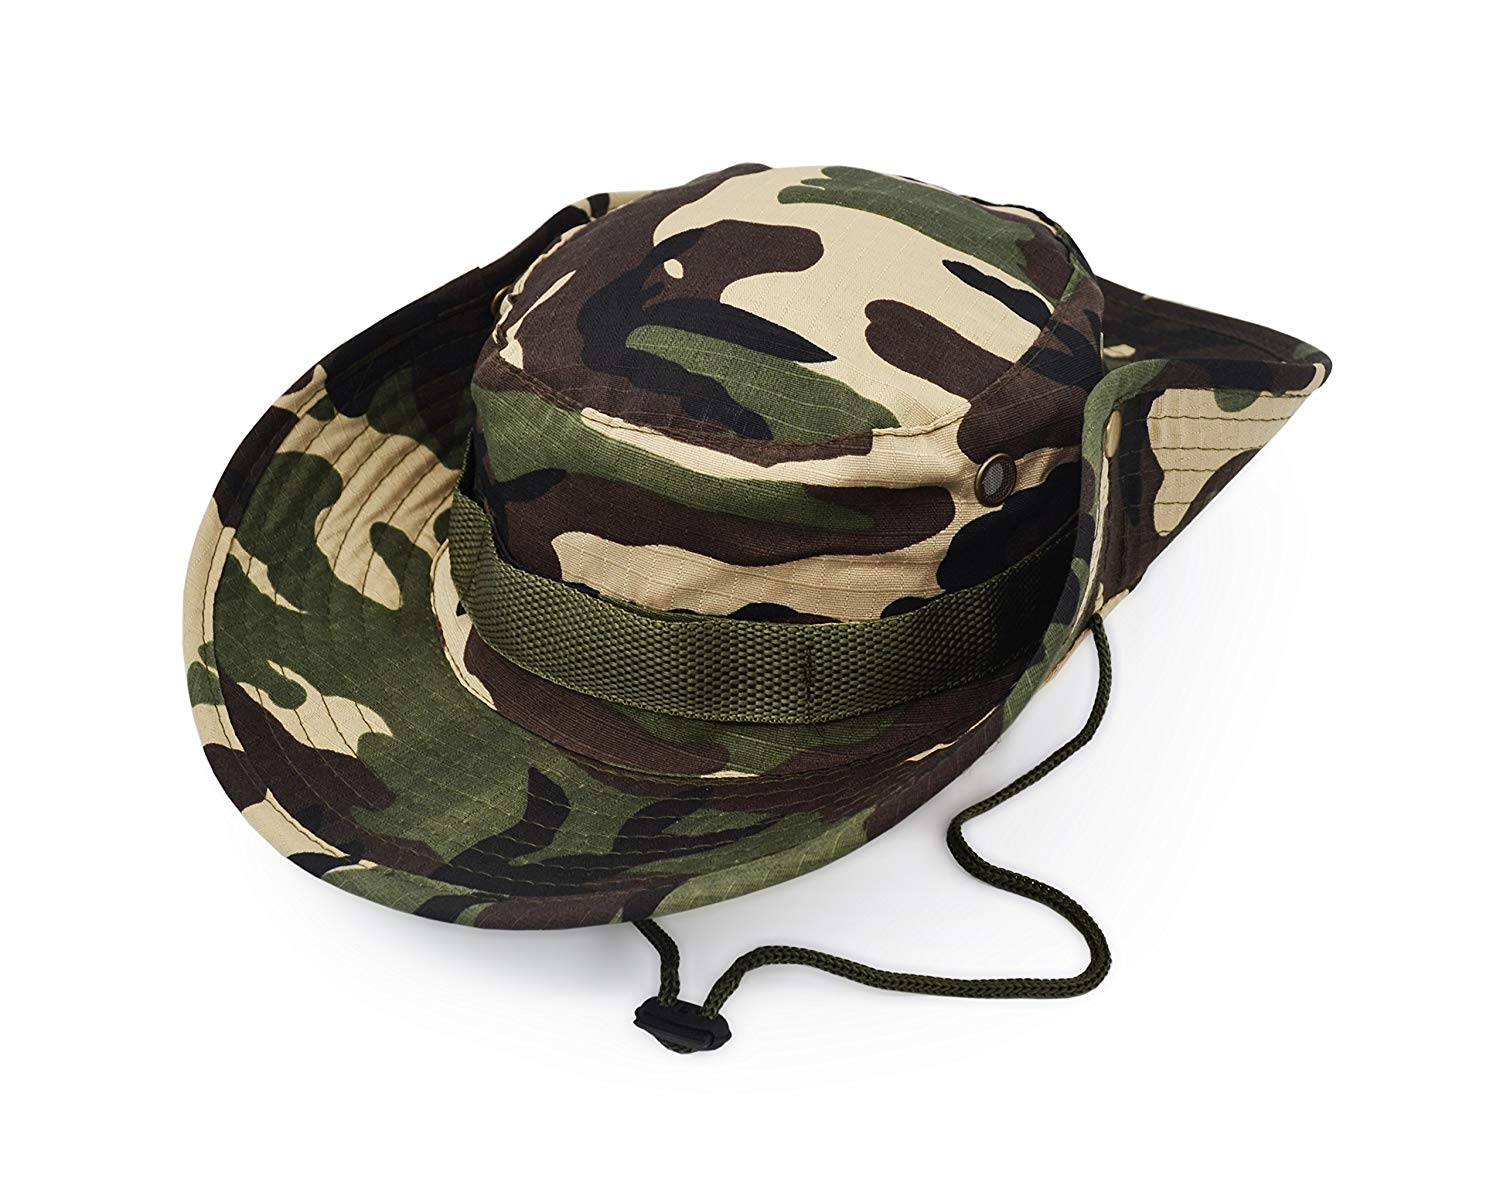 fce9d2c8445 Cheap British Army Boonie Hat